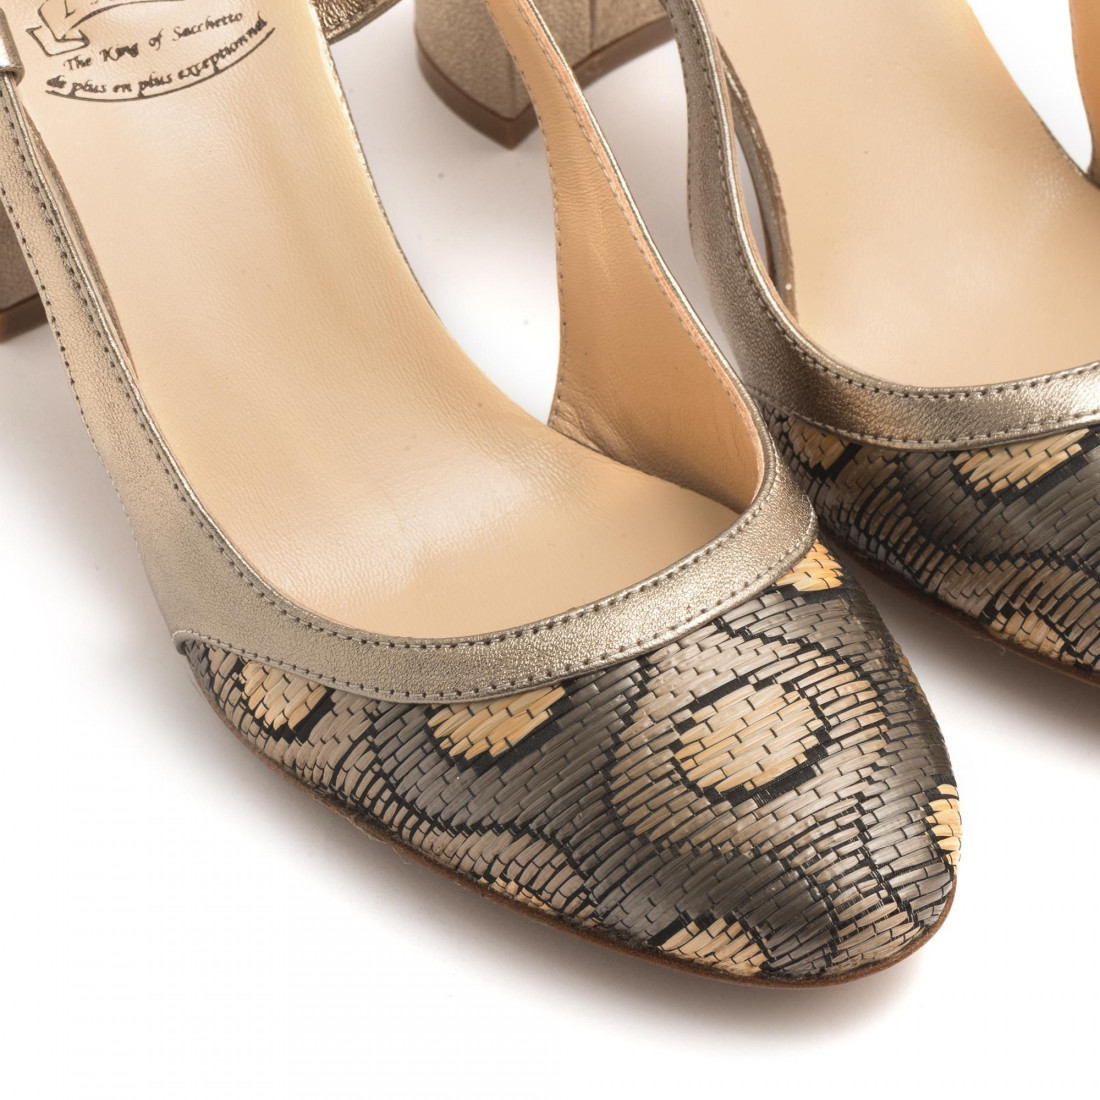 pumps woman larianna ch 1095pois taupe 3135